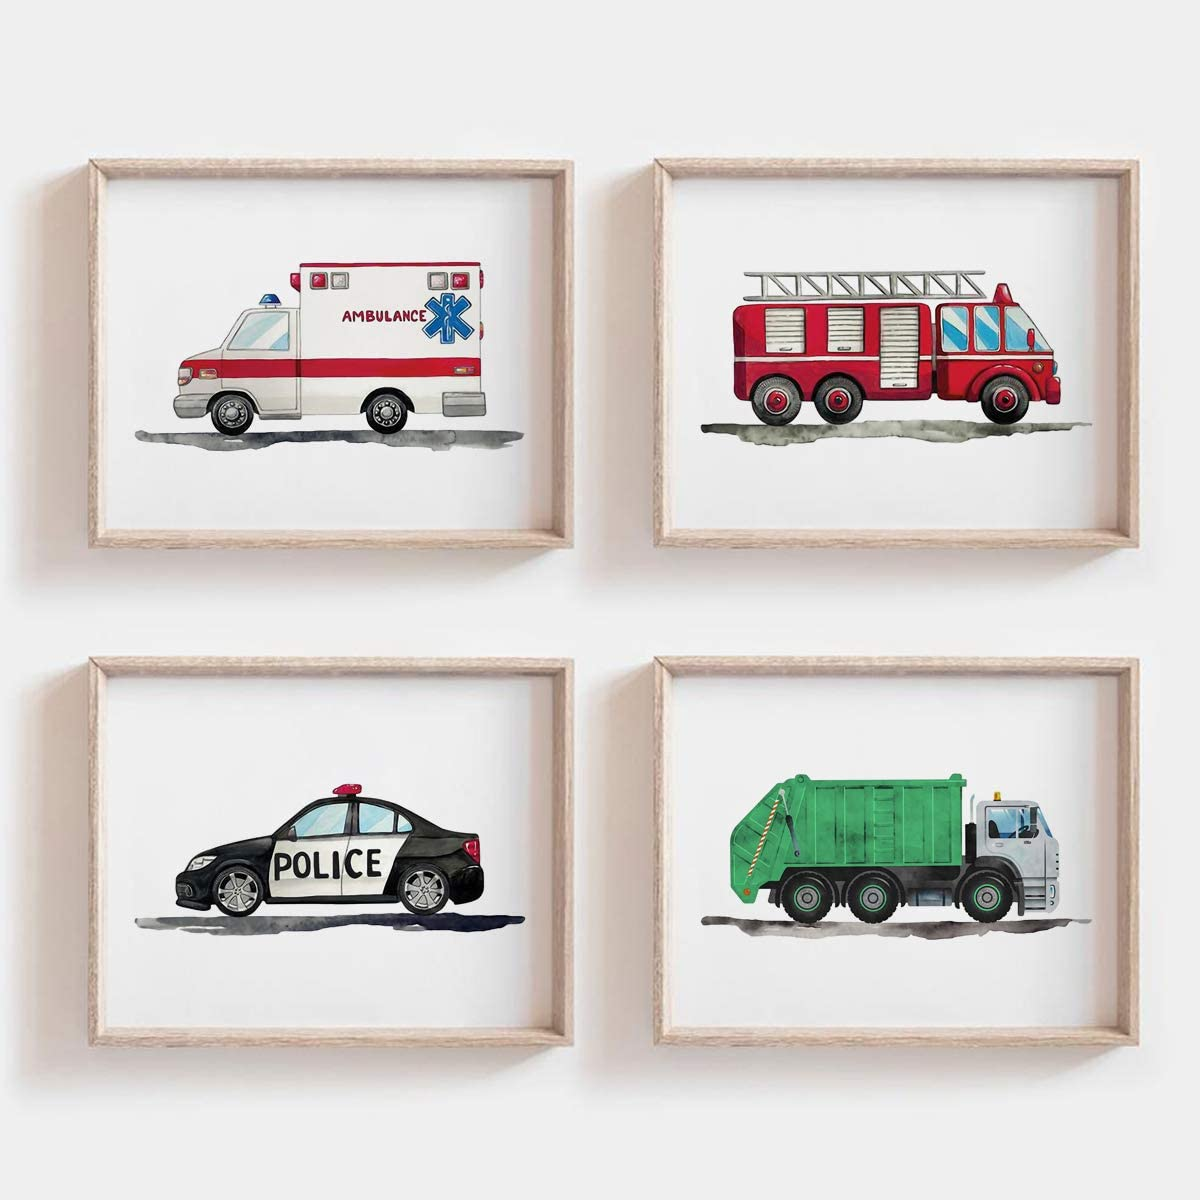 MoharWall Baby Bedroom Ambulance Prints Kids Gallery Wall Set Police Car Wall Art Fire Truck Print Nursery Watercolor Painting Garbage Truck Vehicle Decor